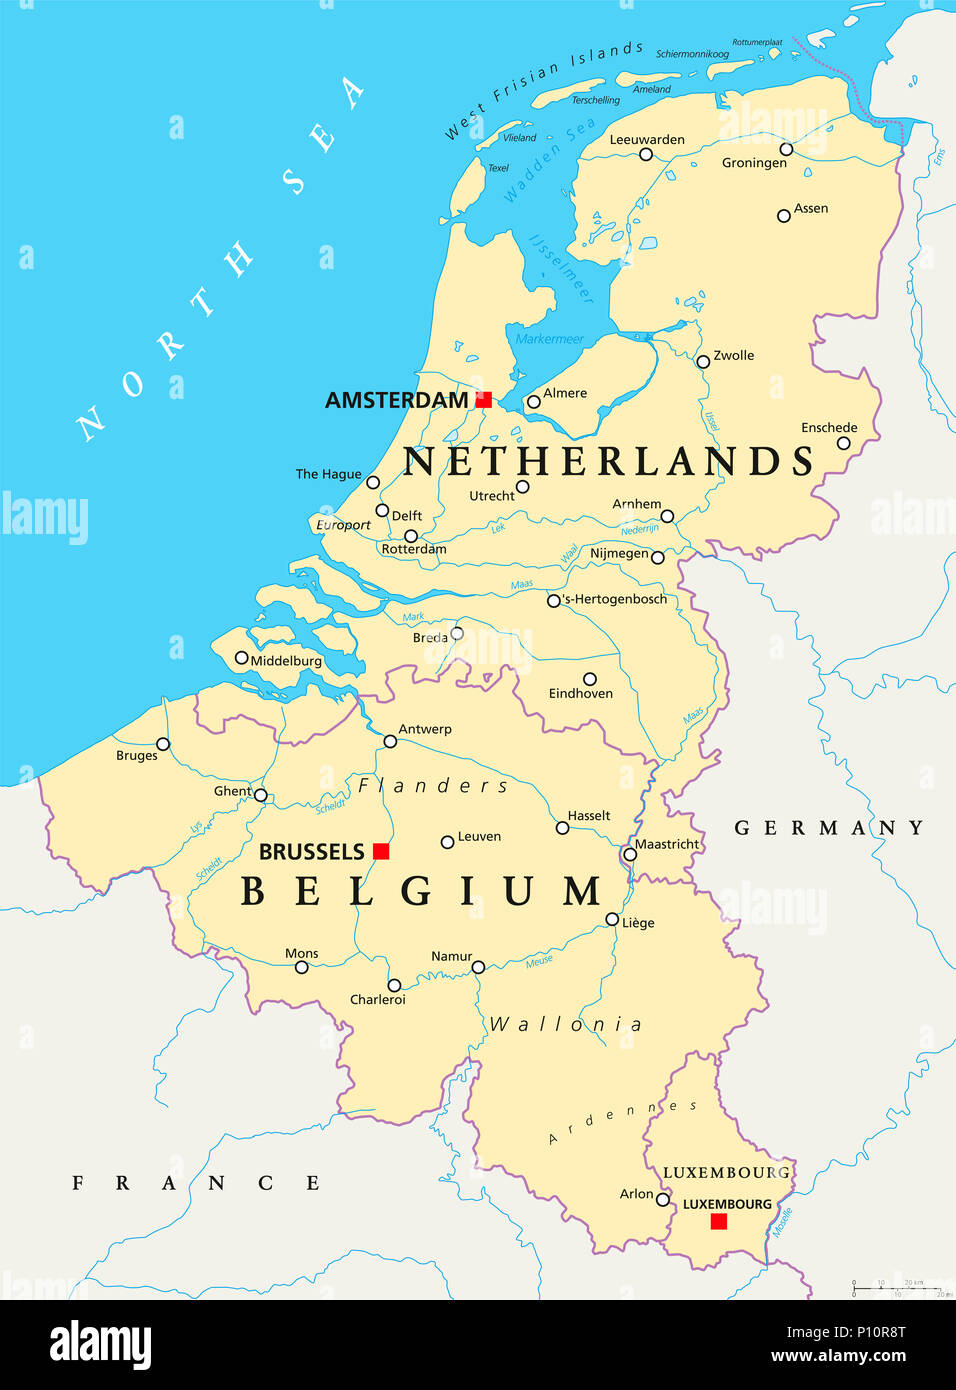 Benelux Belgium Netherlands And Luxembourg Political Map